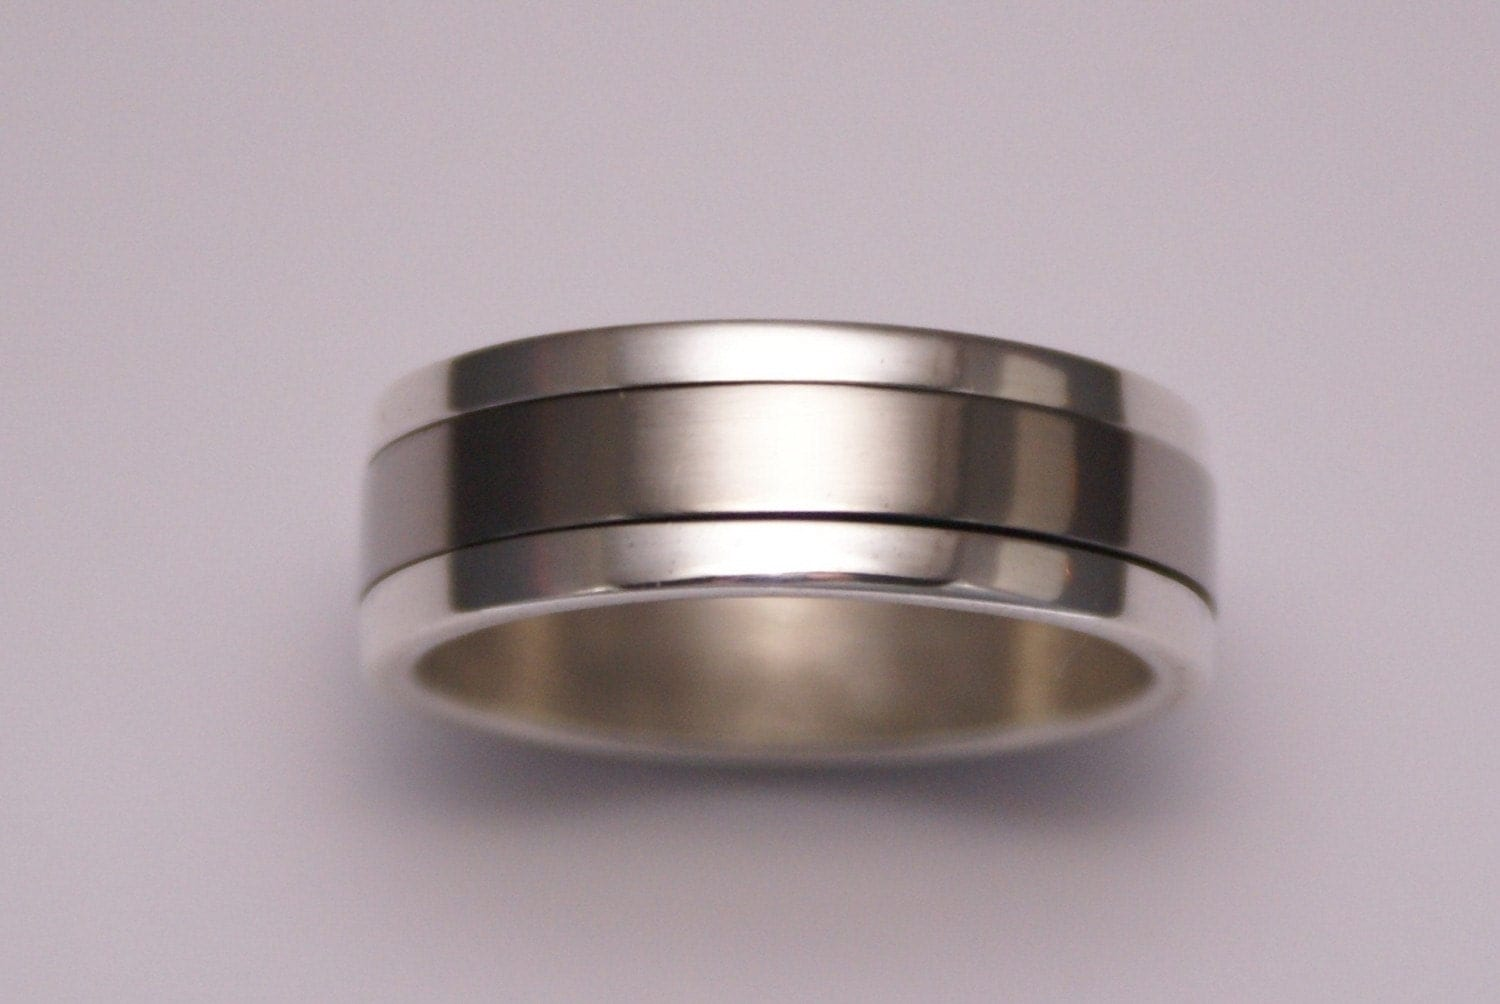 silver and titanium spinning wedding ring